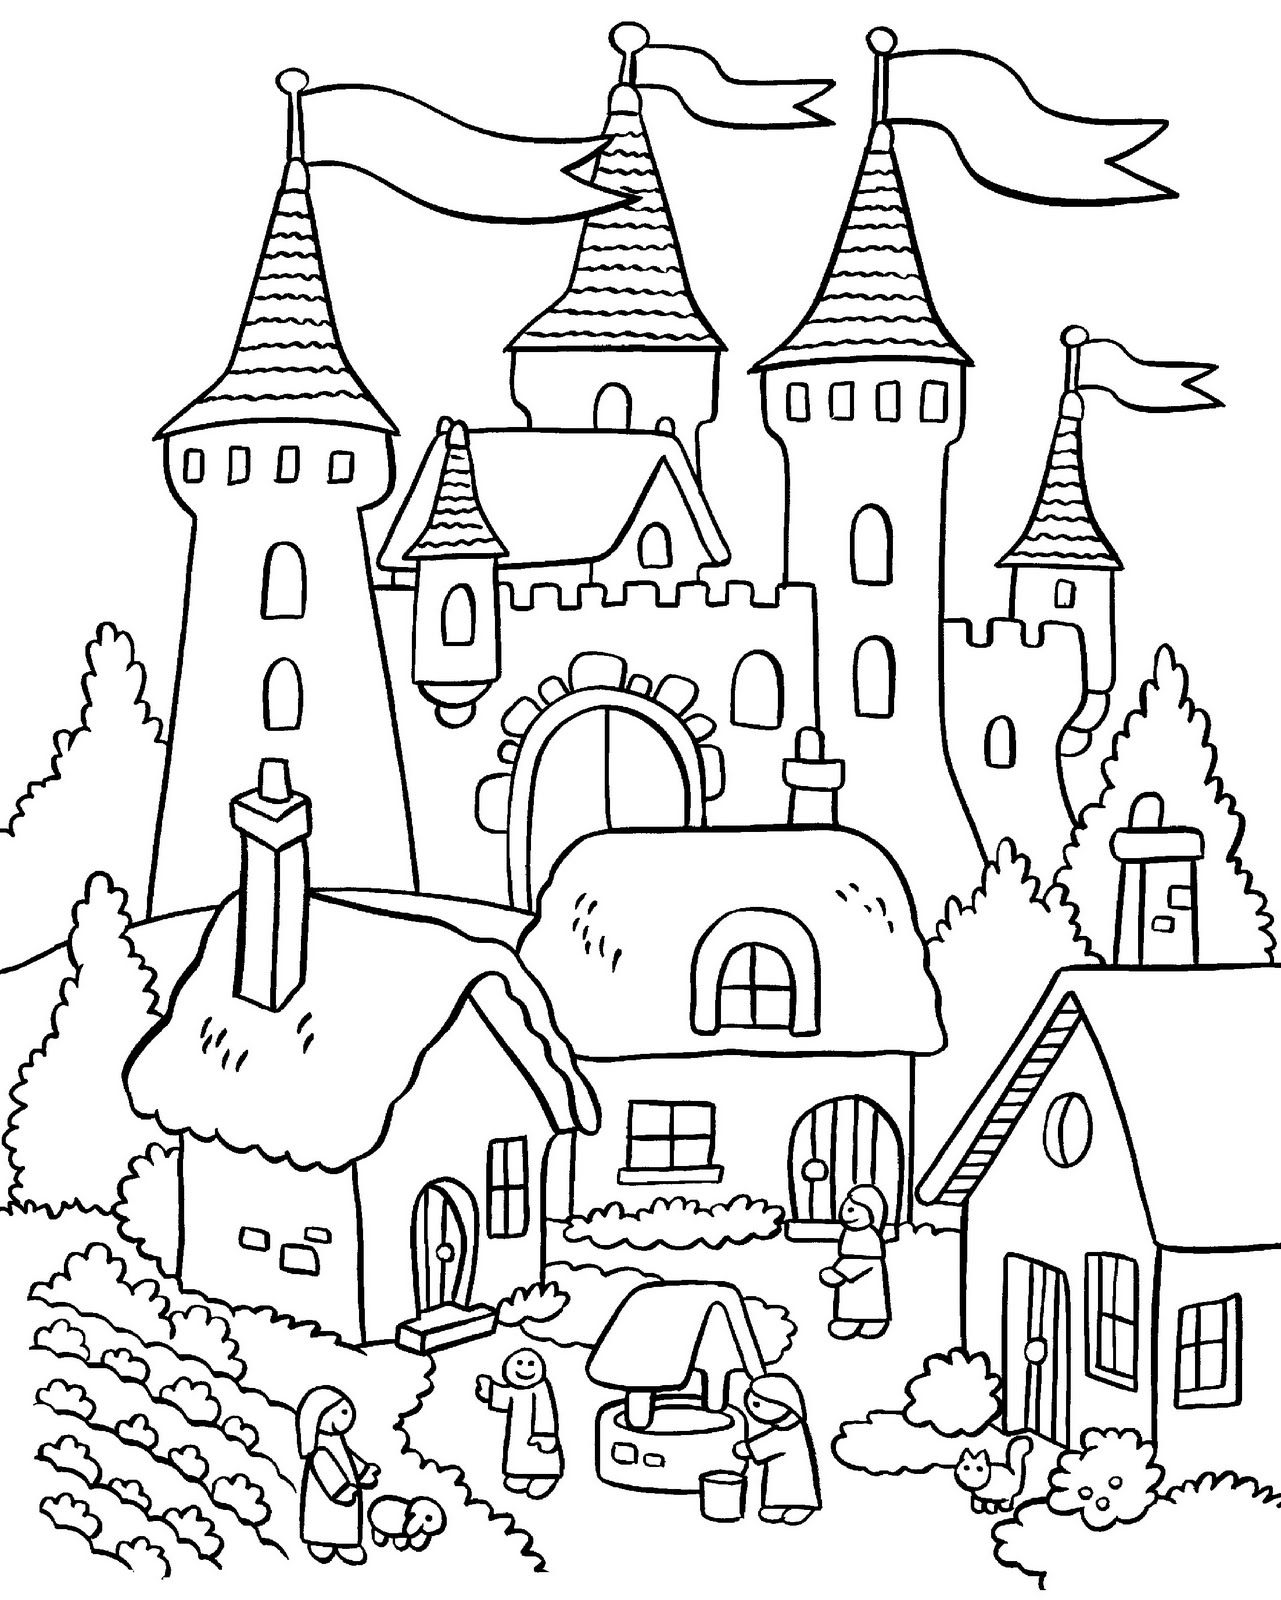 and the flower garden coloring pages elsa coloring